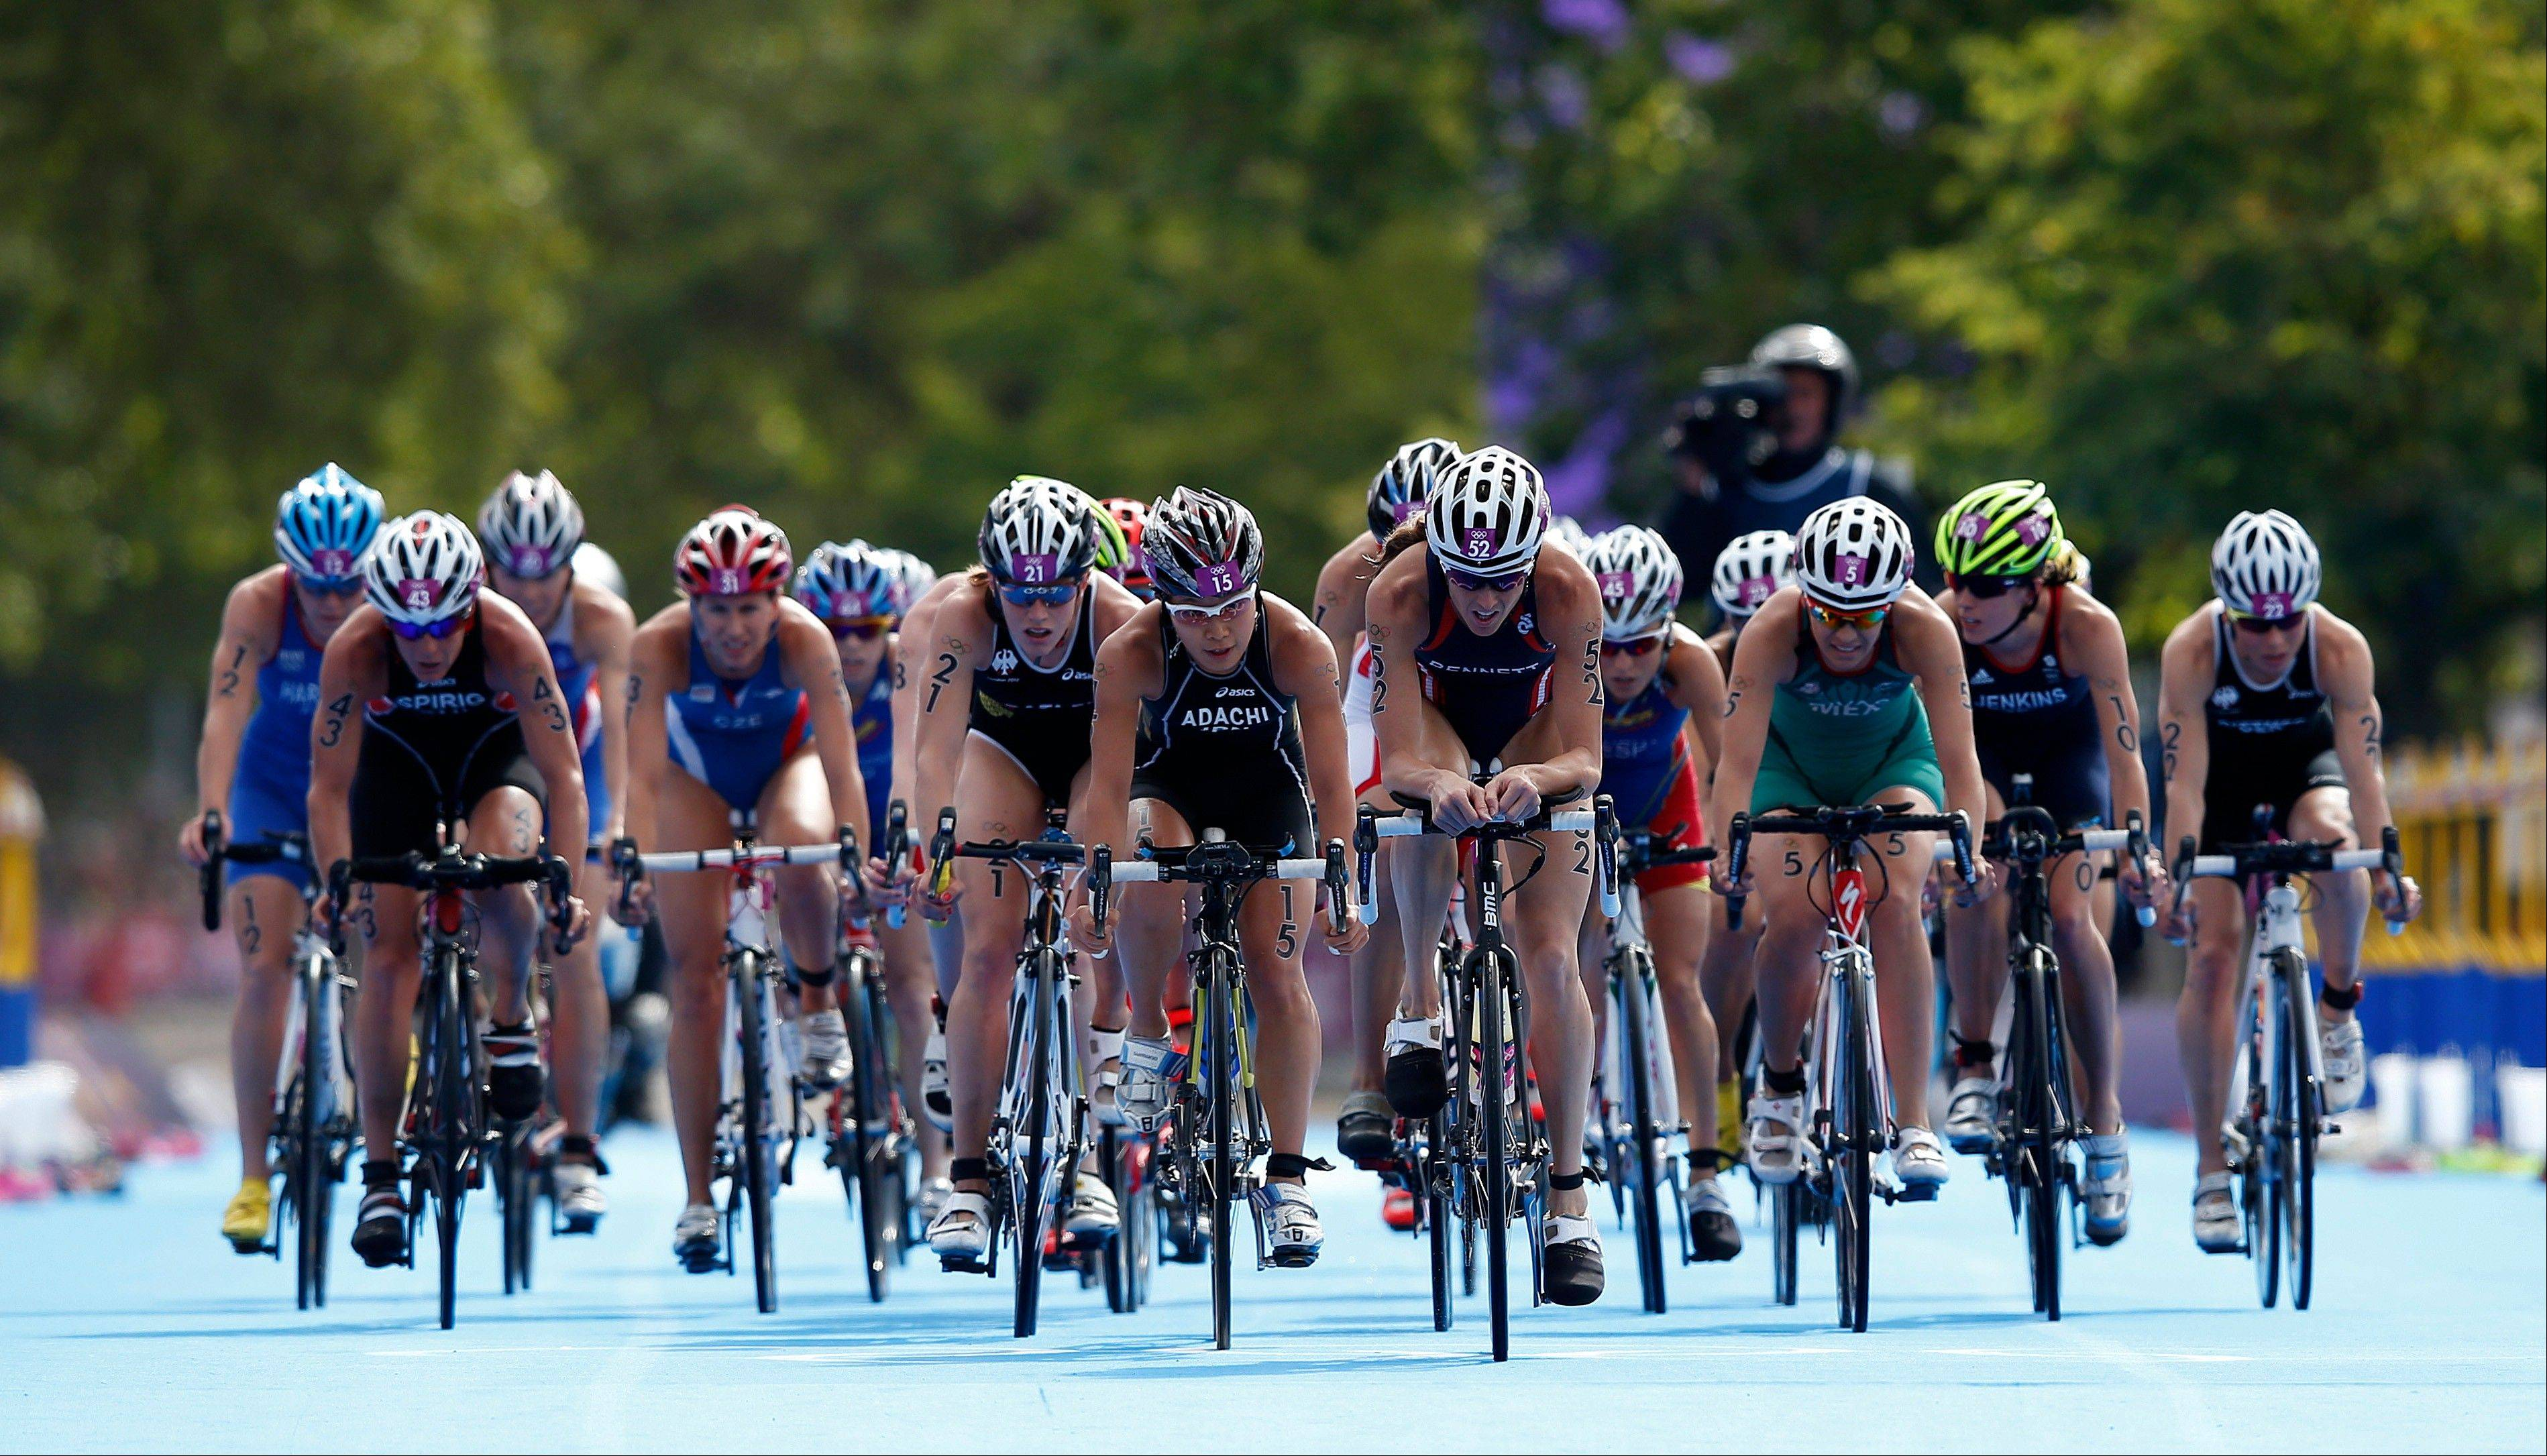 United States' Laura Bennett (52) leads a group of triathletes in the women's triathlon at the 2012 Summer Olympics, Saturday, Aug. 4, 2012, in London.